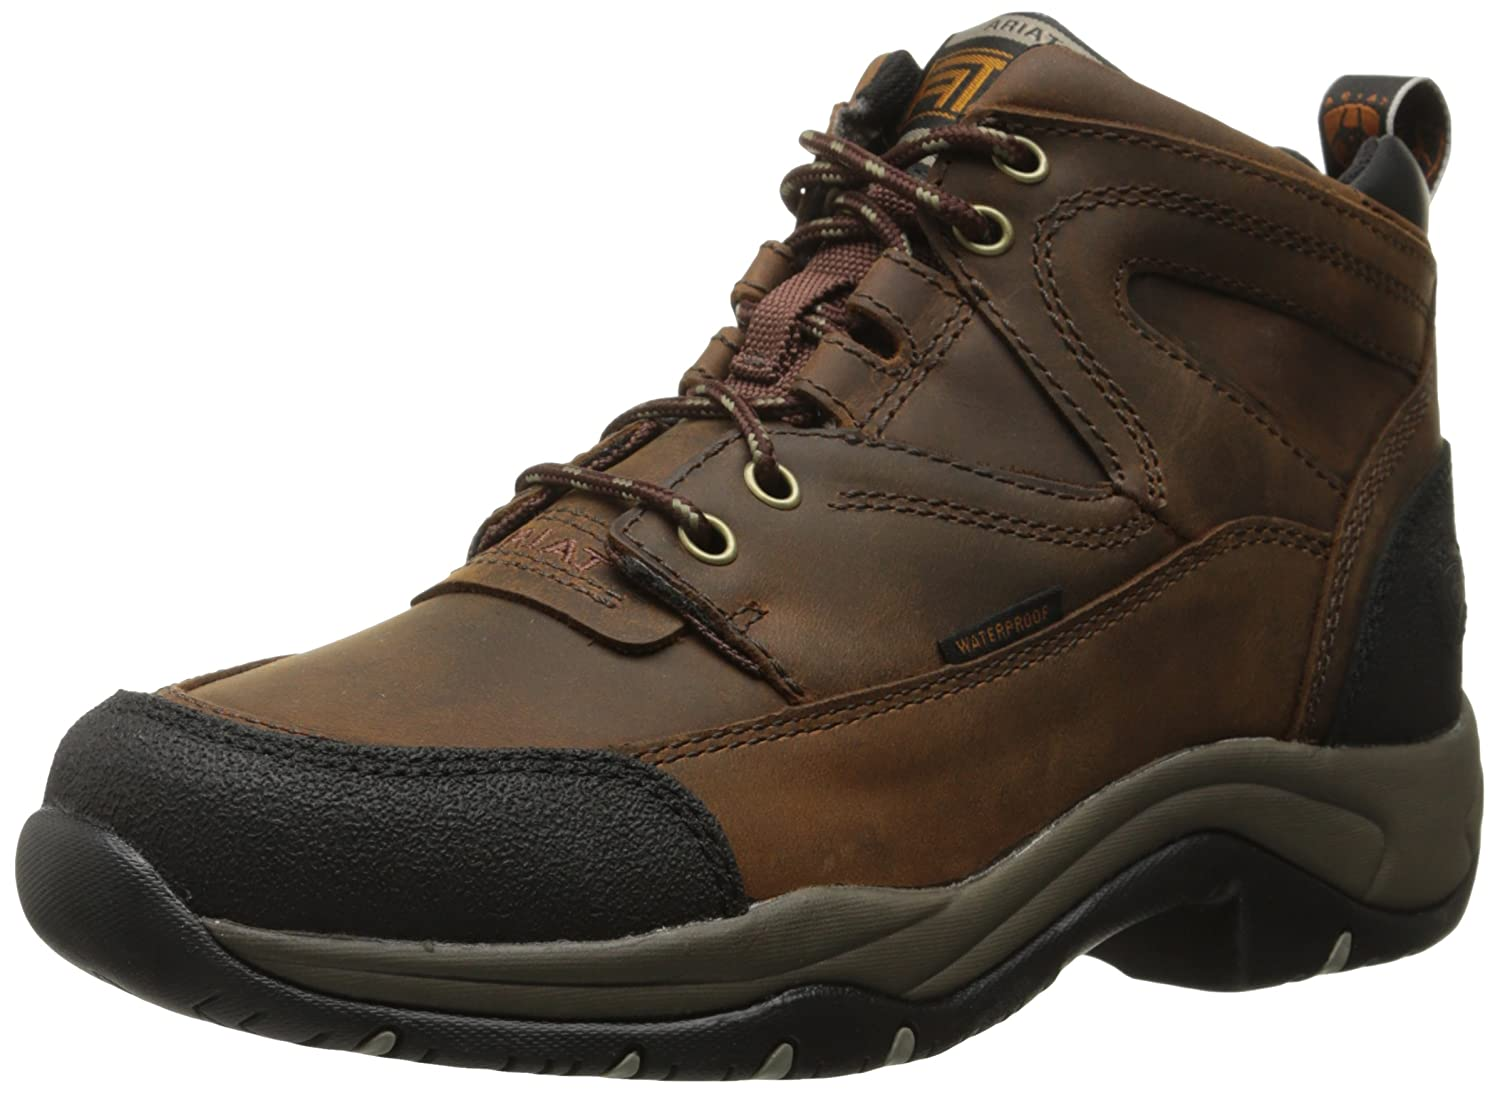 Ariat Women's Terrain H2O Hiking Boot Copper B002A13HOI 6.5 C US|Copper